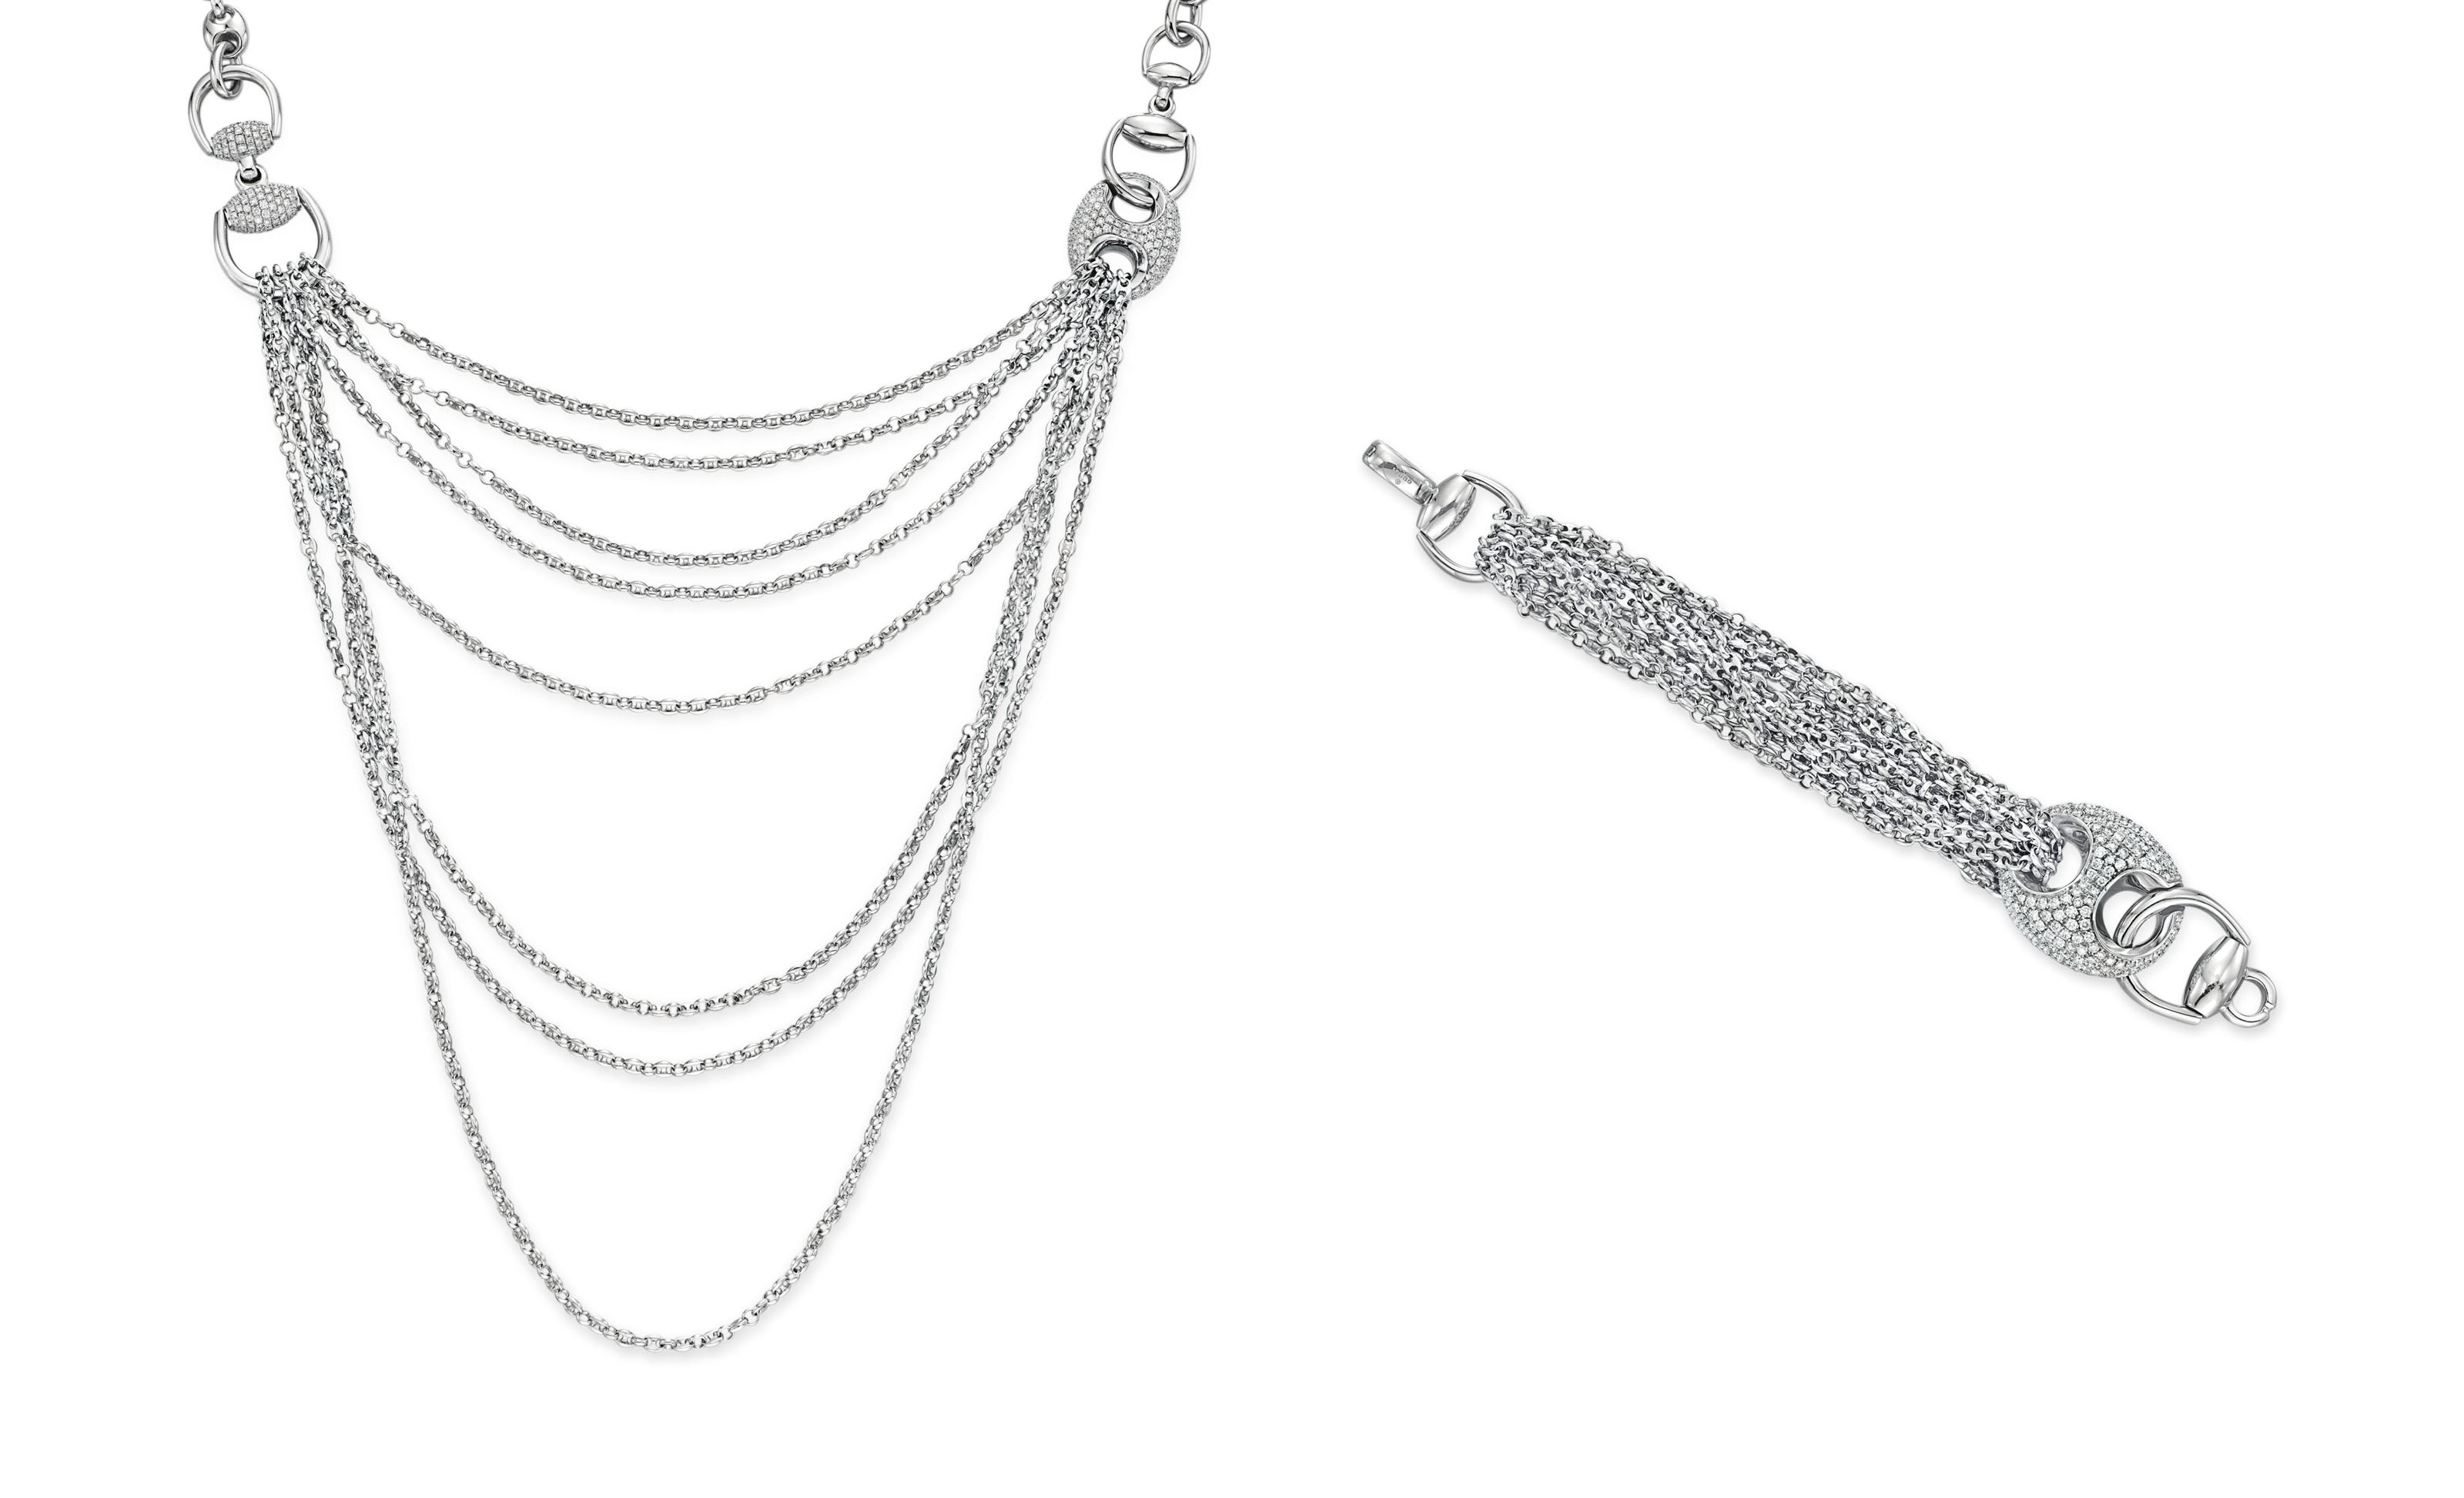 A SET OF DIAMOND AND WHITE GOLD JEWELRY, BY GUCCI